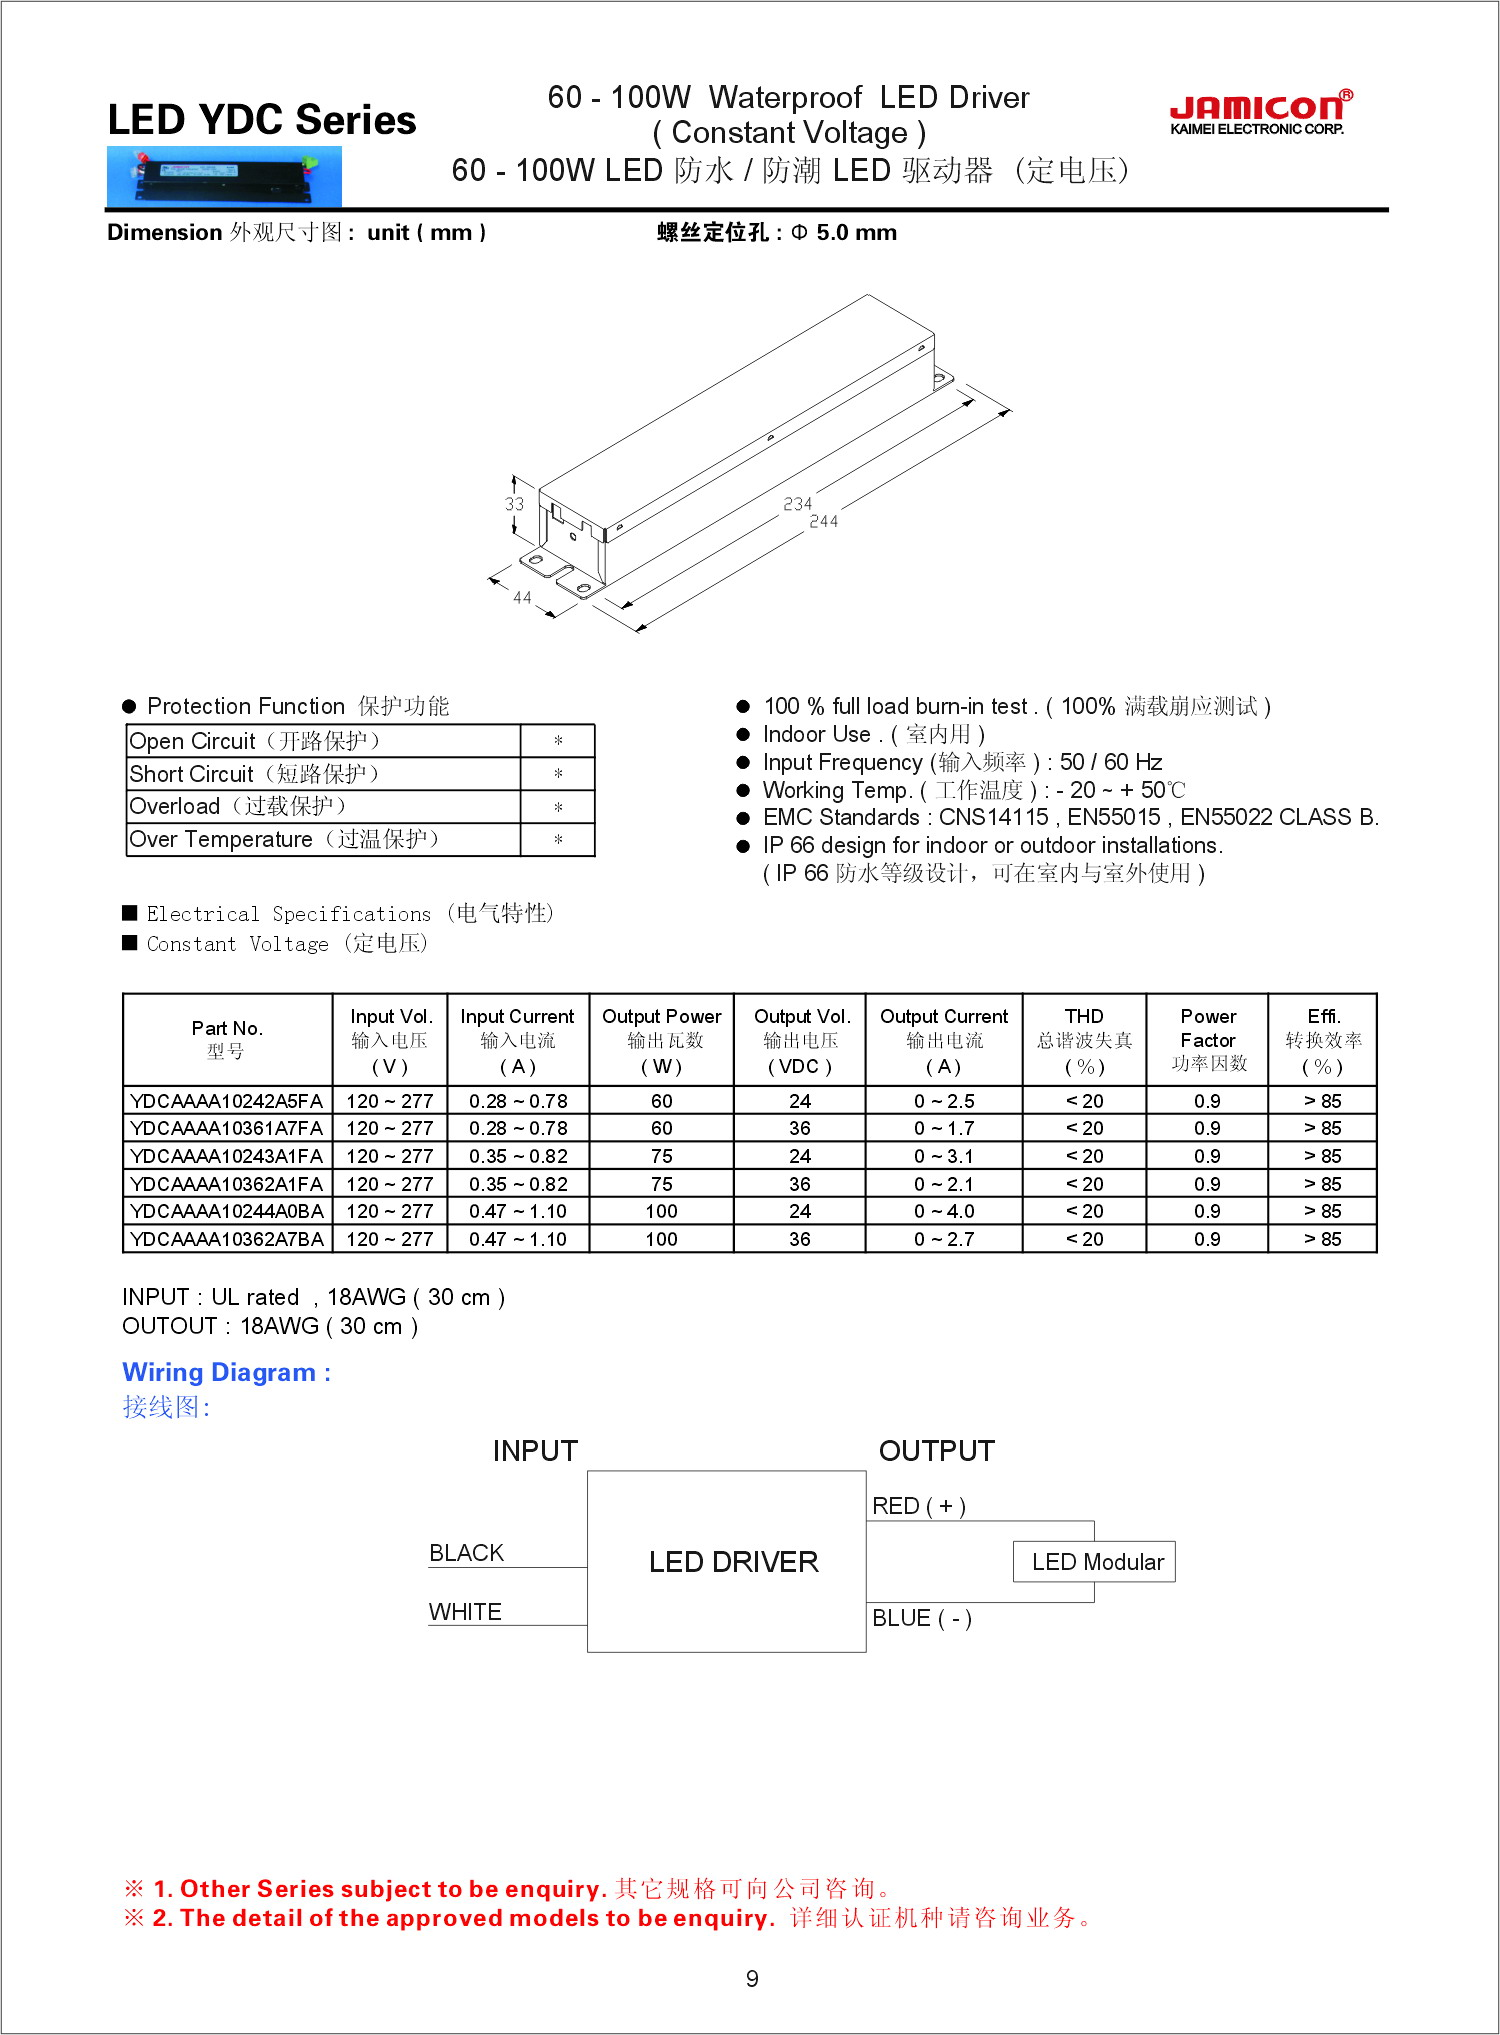 Led Driver Constant Voltage 40 100 Watts Kaimei Electronic Corp Power Design Ip66 Input Voltage100 277v Output Voltage12 24 36 48v Factor095cul Fcc Ce Approved